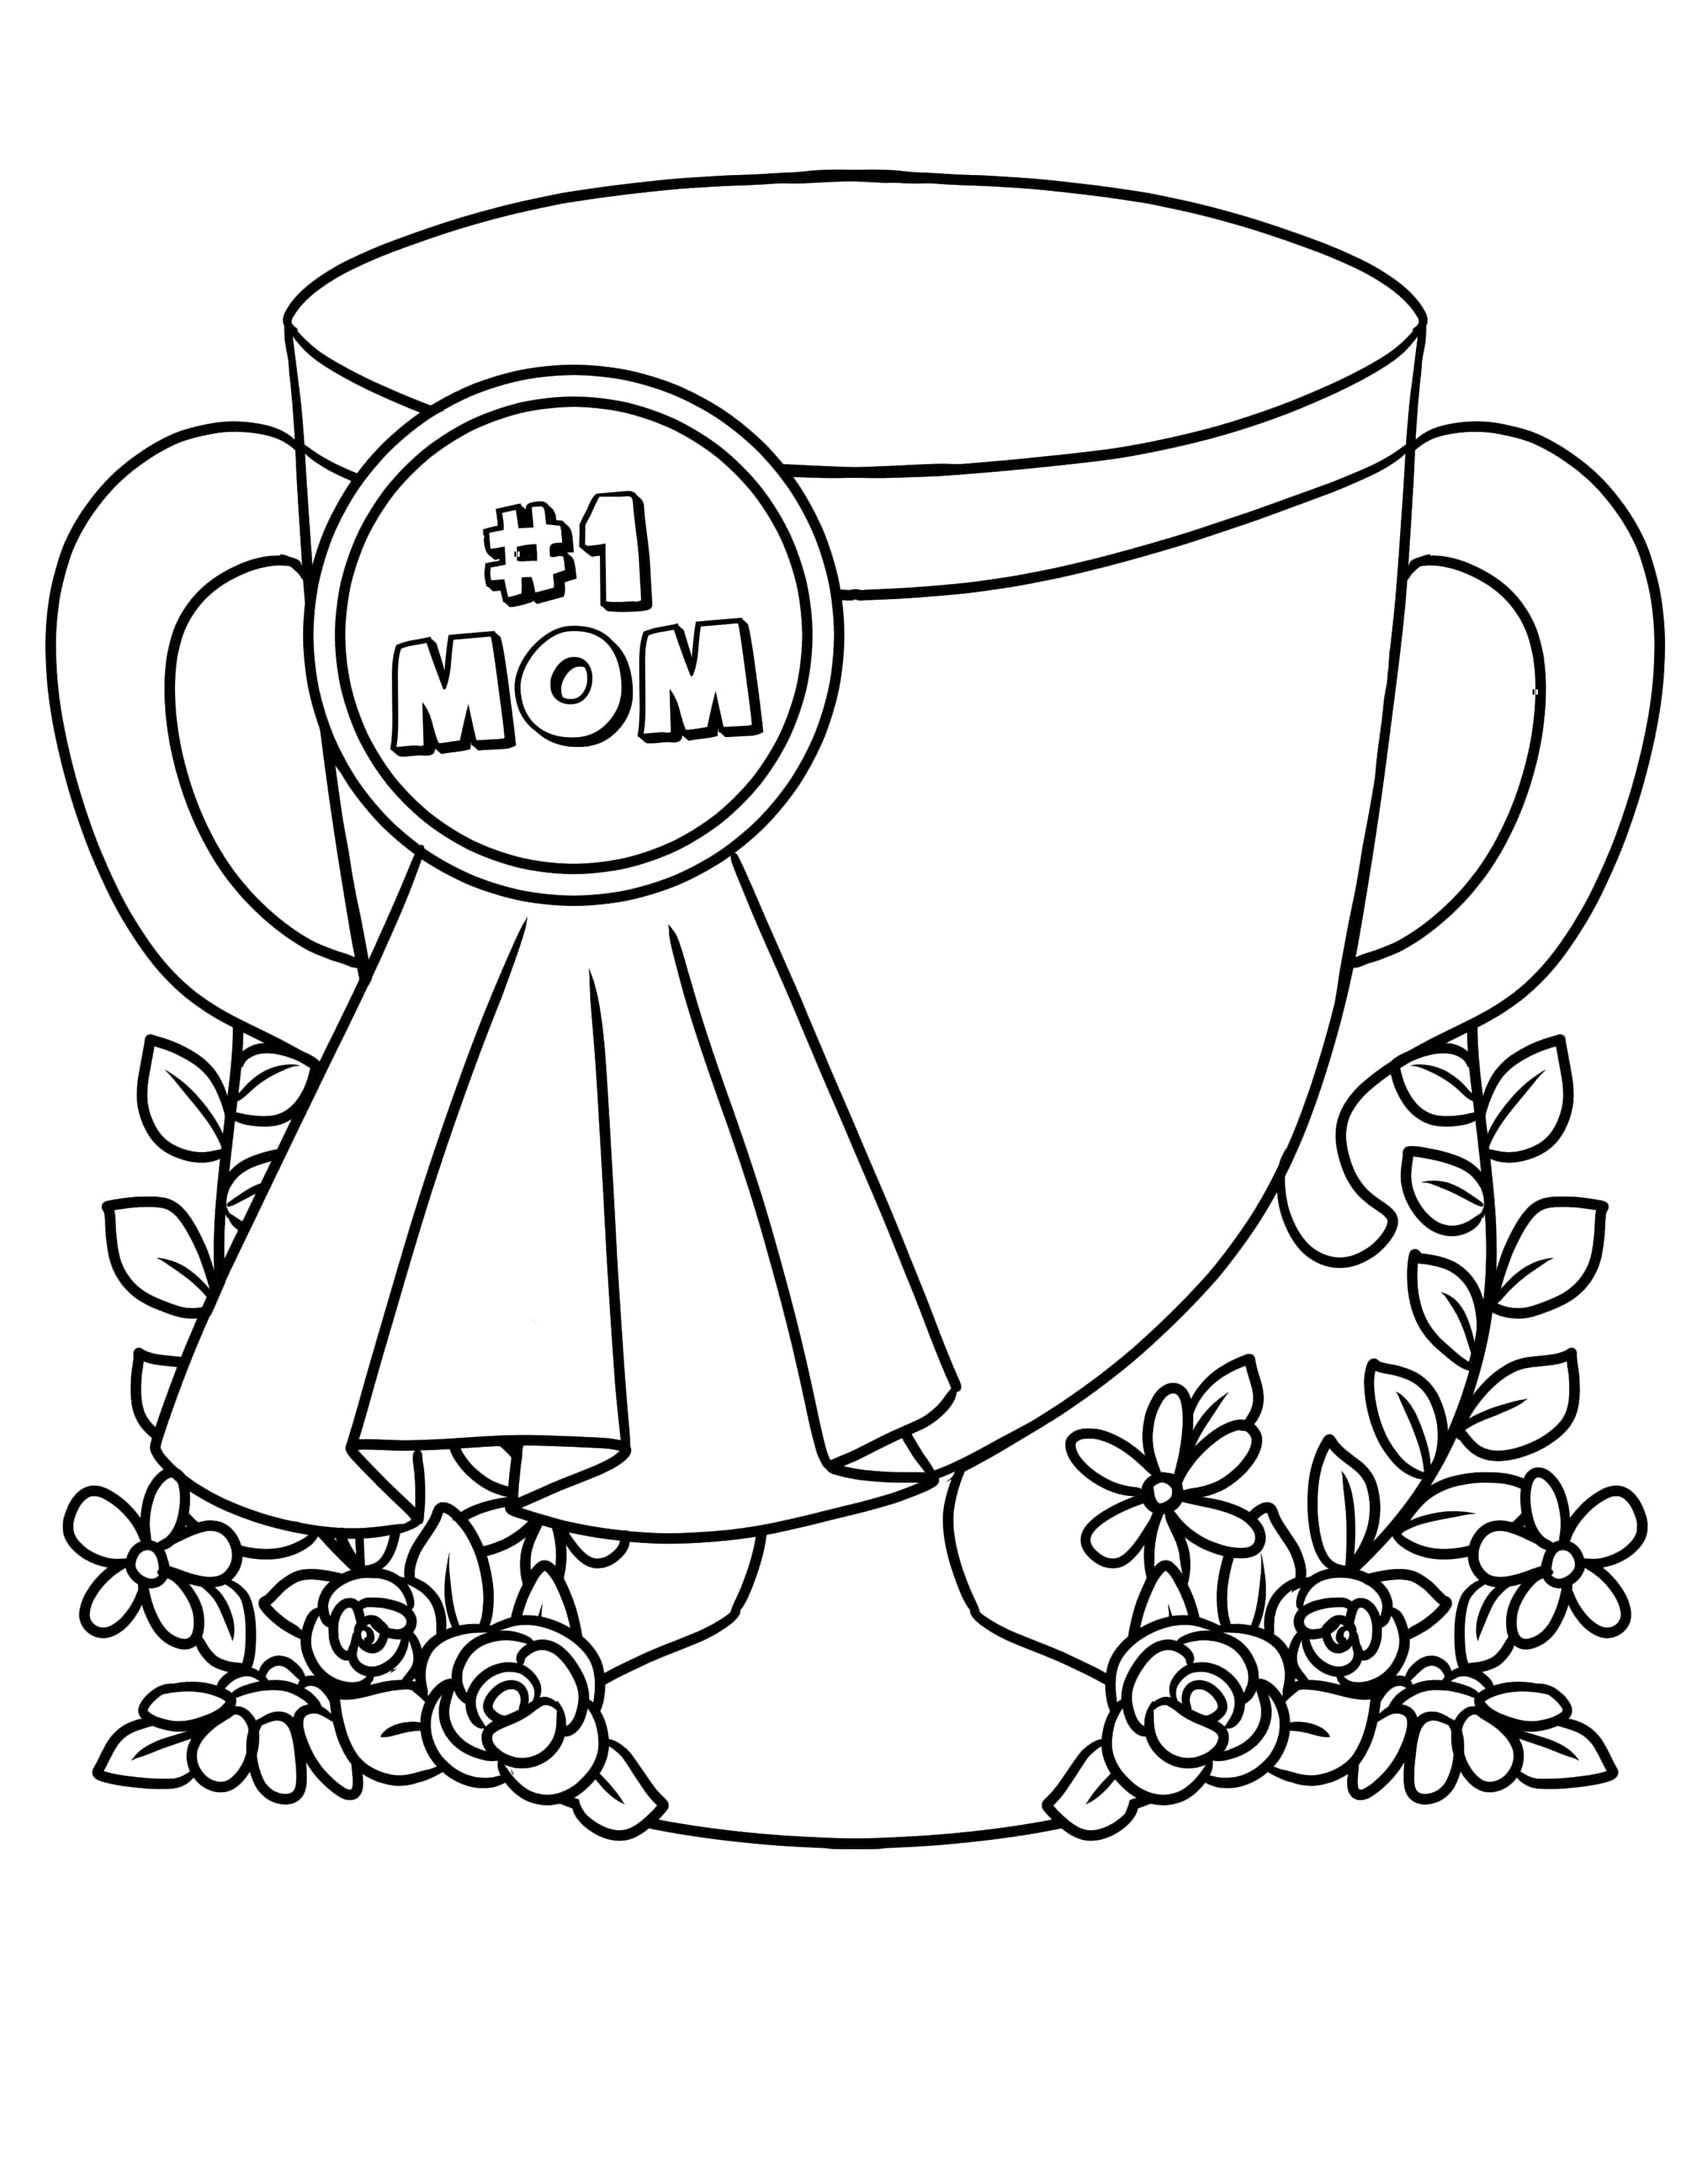 If your mom deserves a trophy, the second of the Mother's Day coloring pages free printables is perfect!